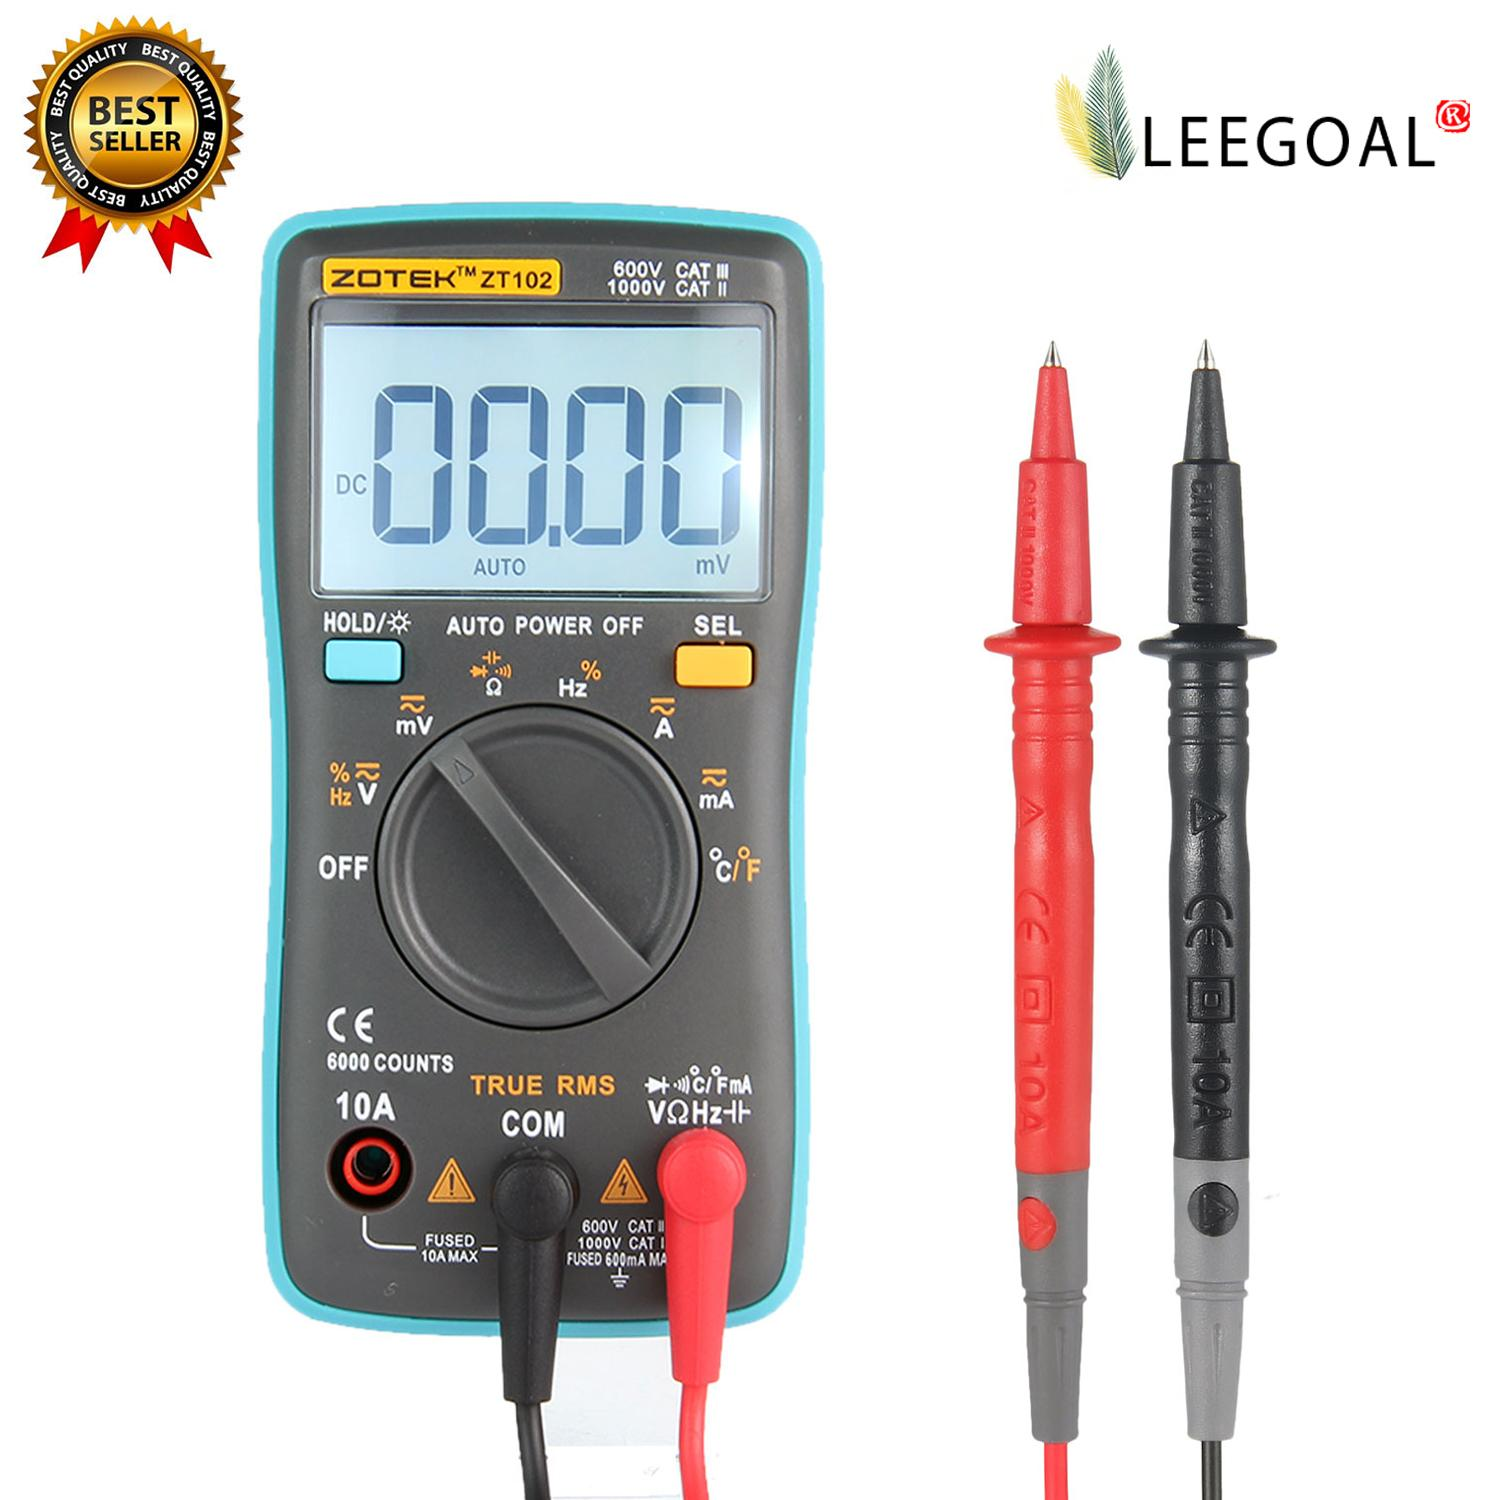 Leegoal Zt102 True Rms Multifunctional Lcd Digital Multimeter Dmm Dc Ac Voltage Current Resistance Diode Capacitance Temperature Tester Measurement Automatic Polarity Identification Ammeter Voltmeter Ohm - Intl By Leegoal.